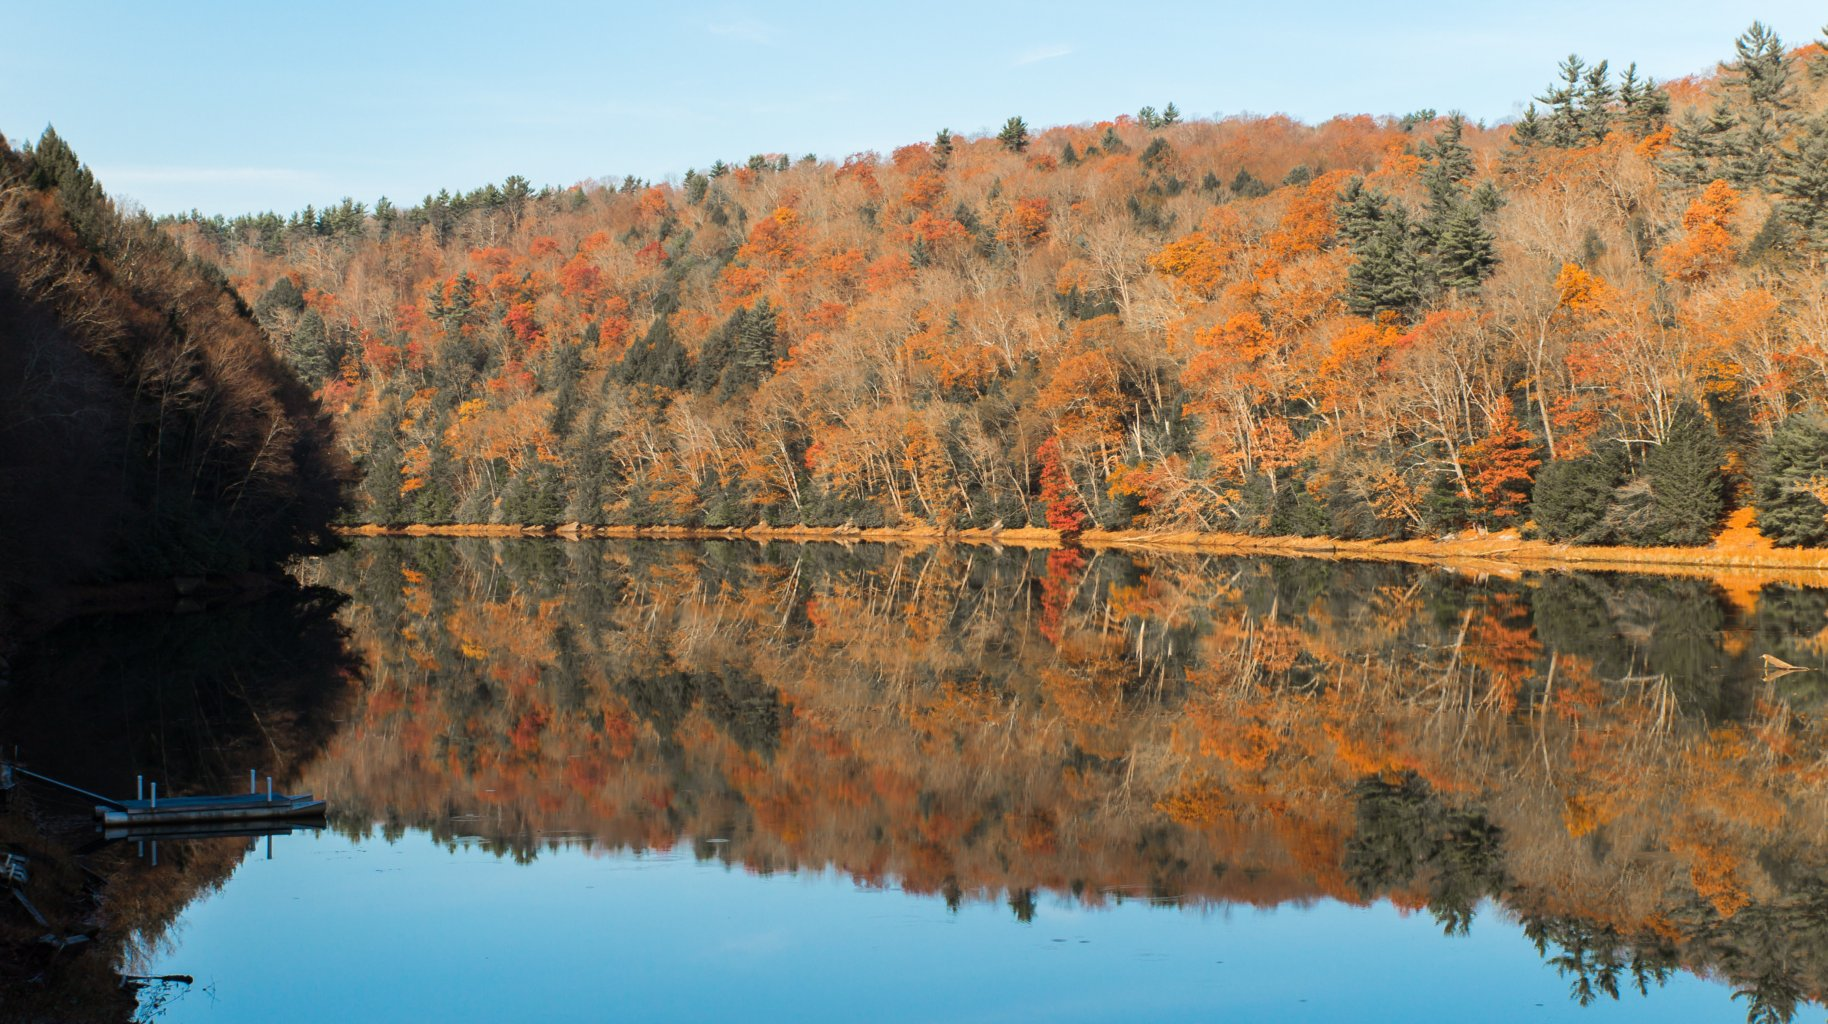 Clarion River near Toby Creek Boat Launch, USA